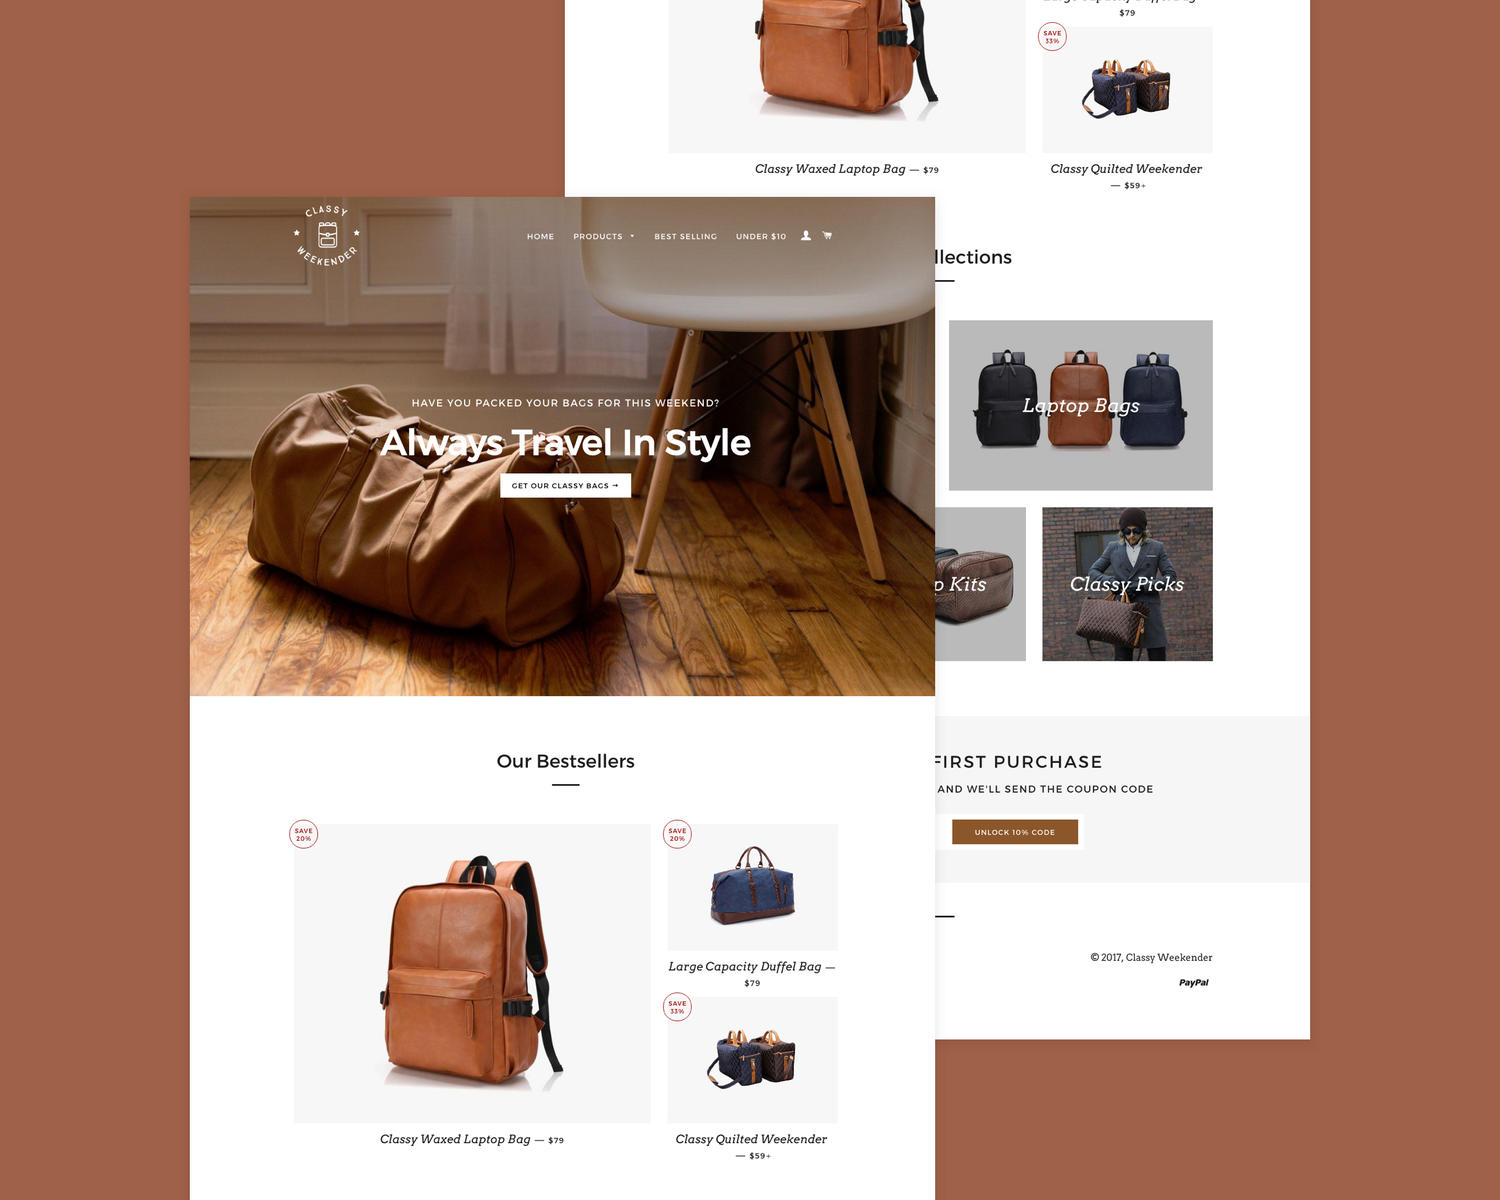 Express Shopify Store Setup - 48 HOURS by sambruce - 105569